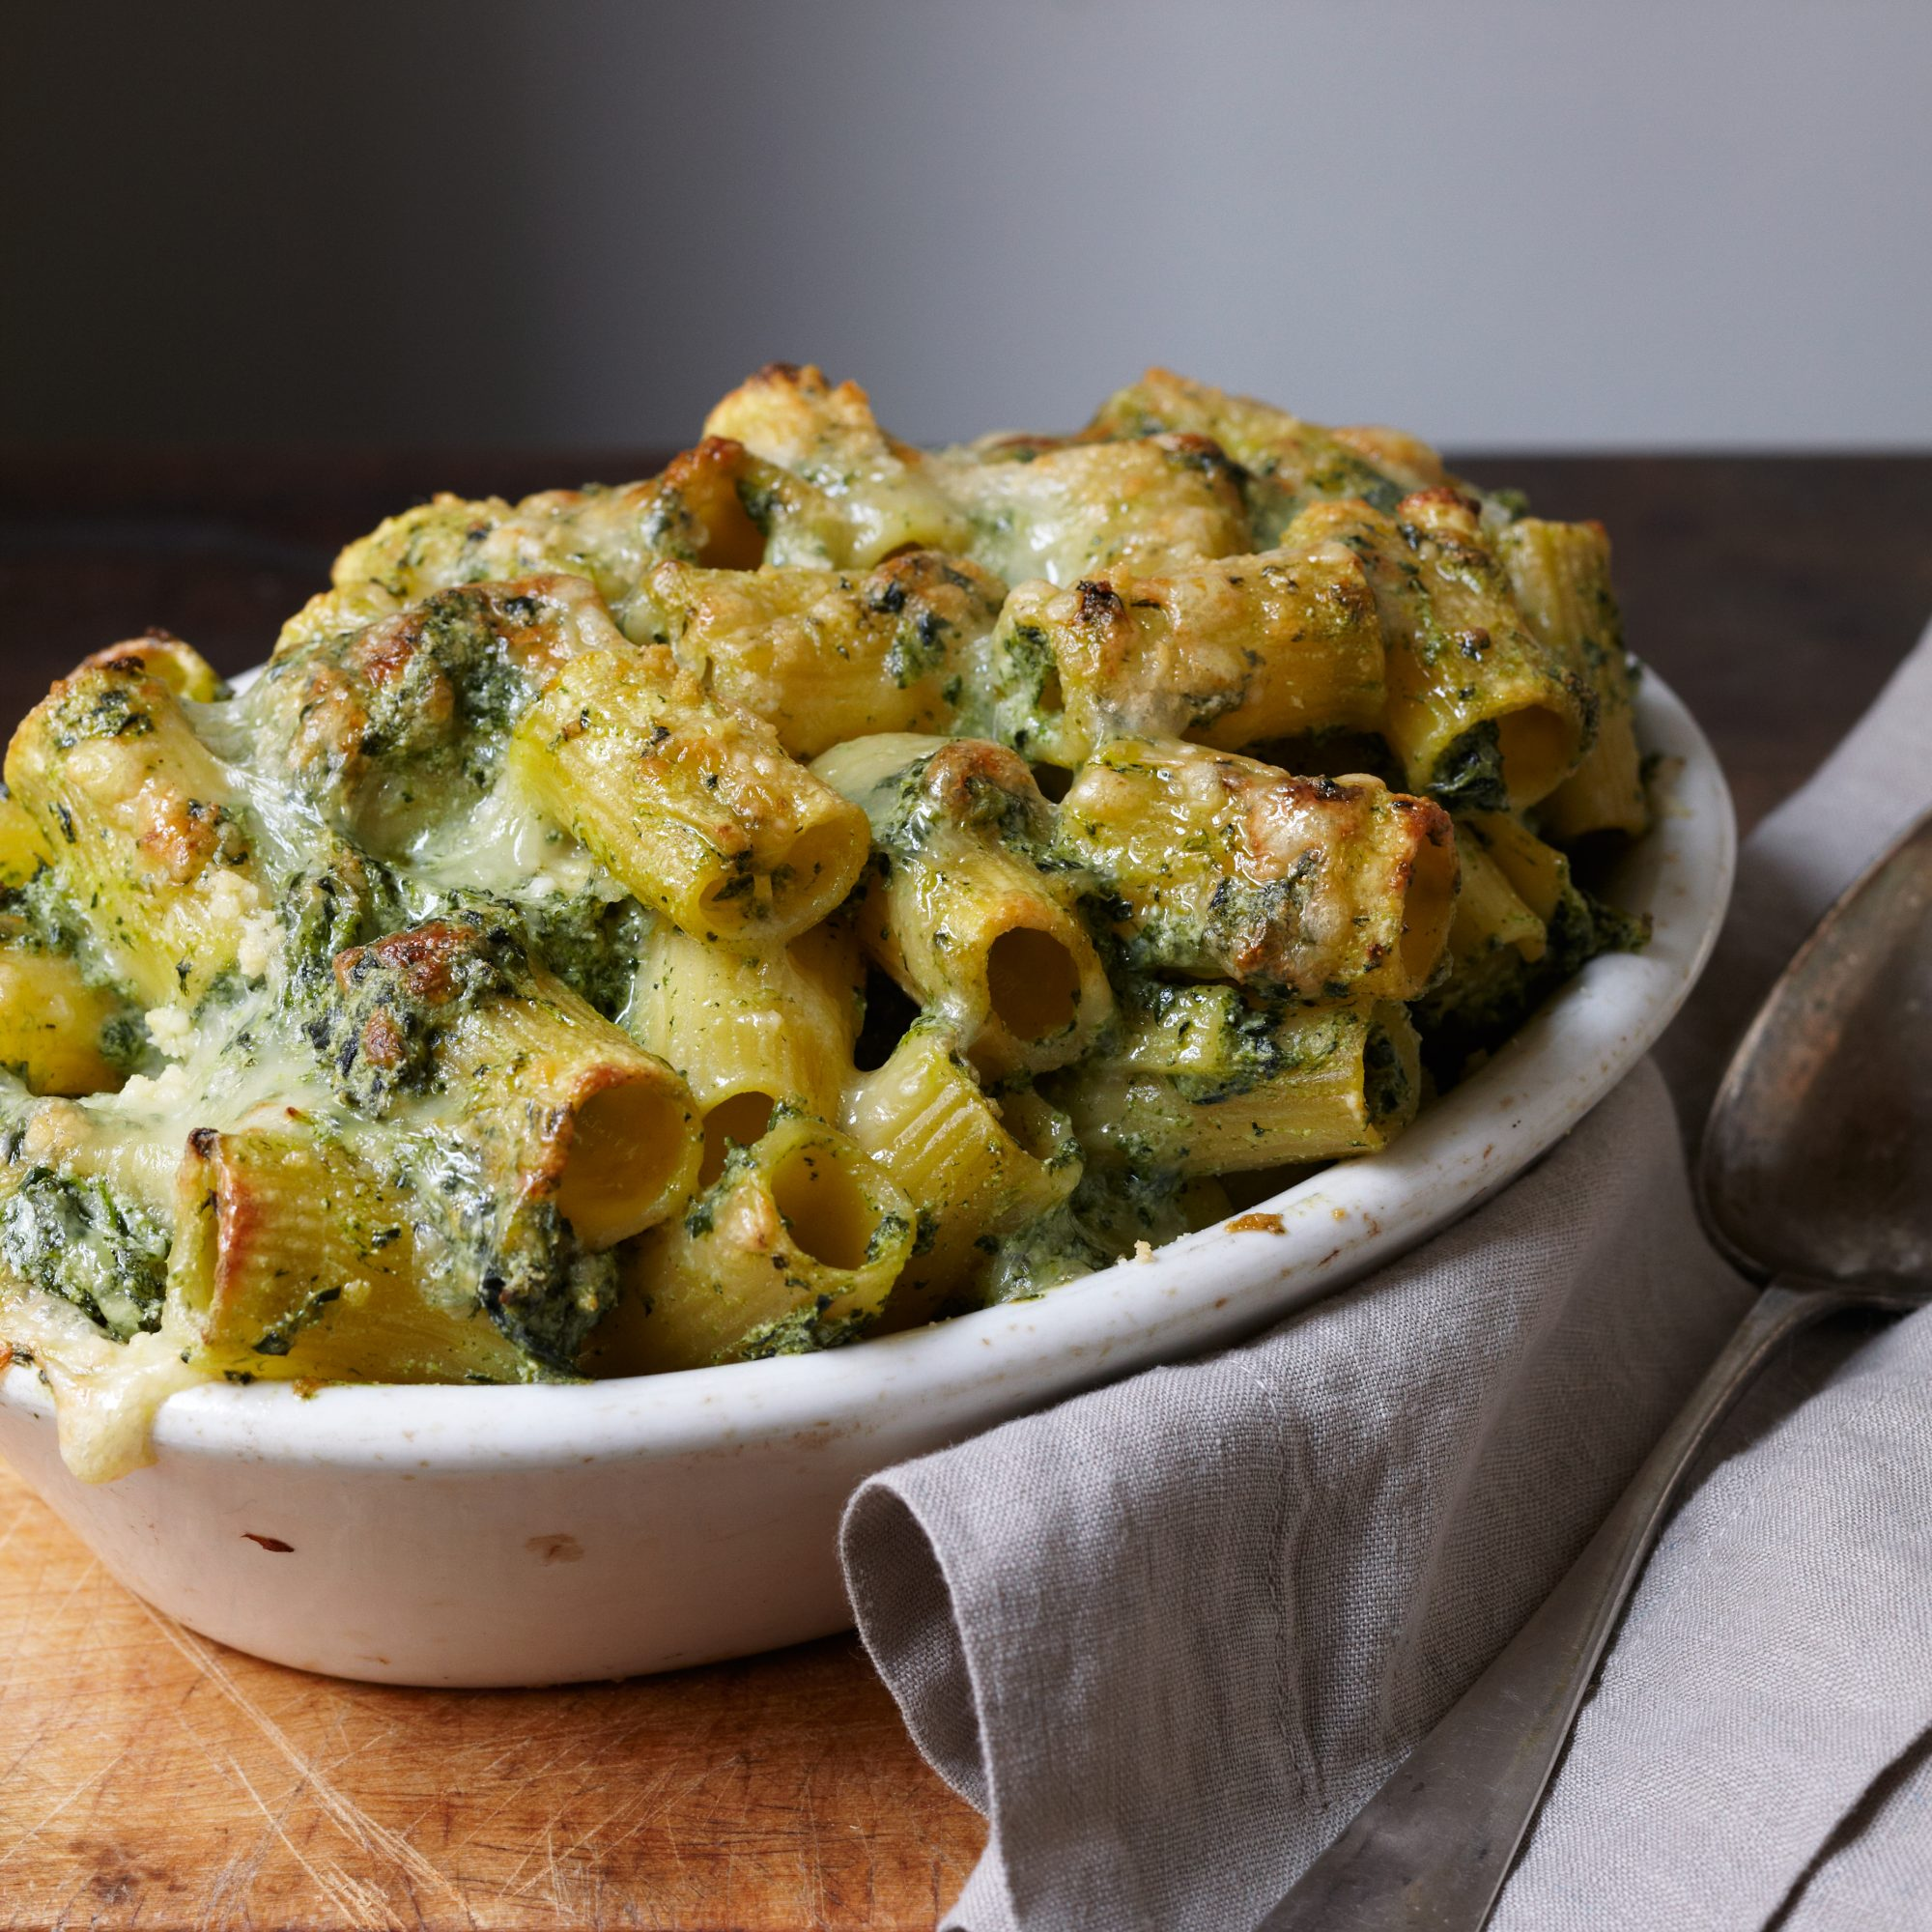 Baked Rigatoni with Spinach, Ricotta, and Fontina